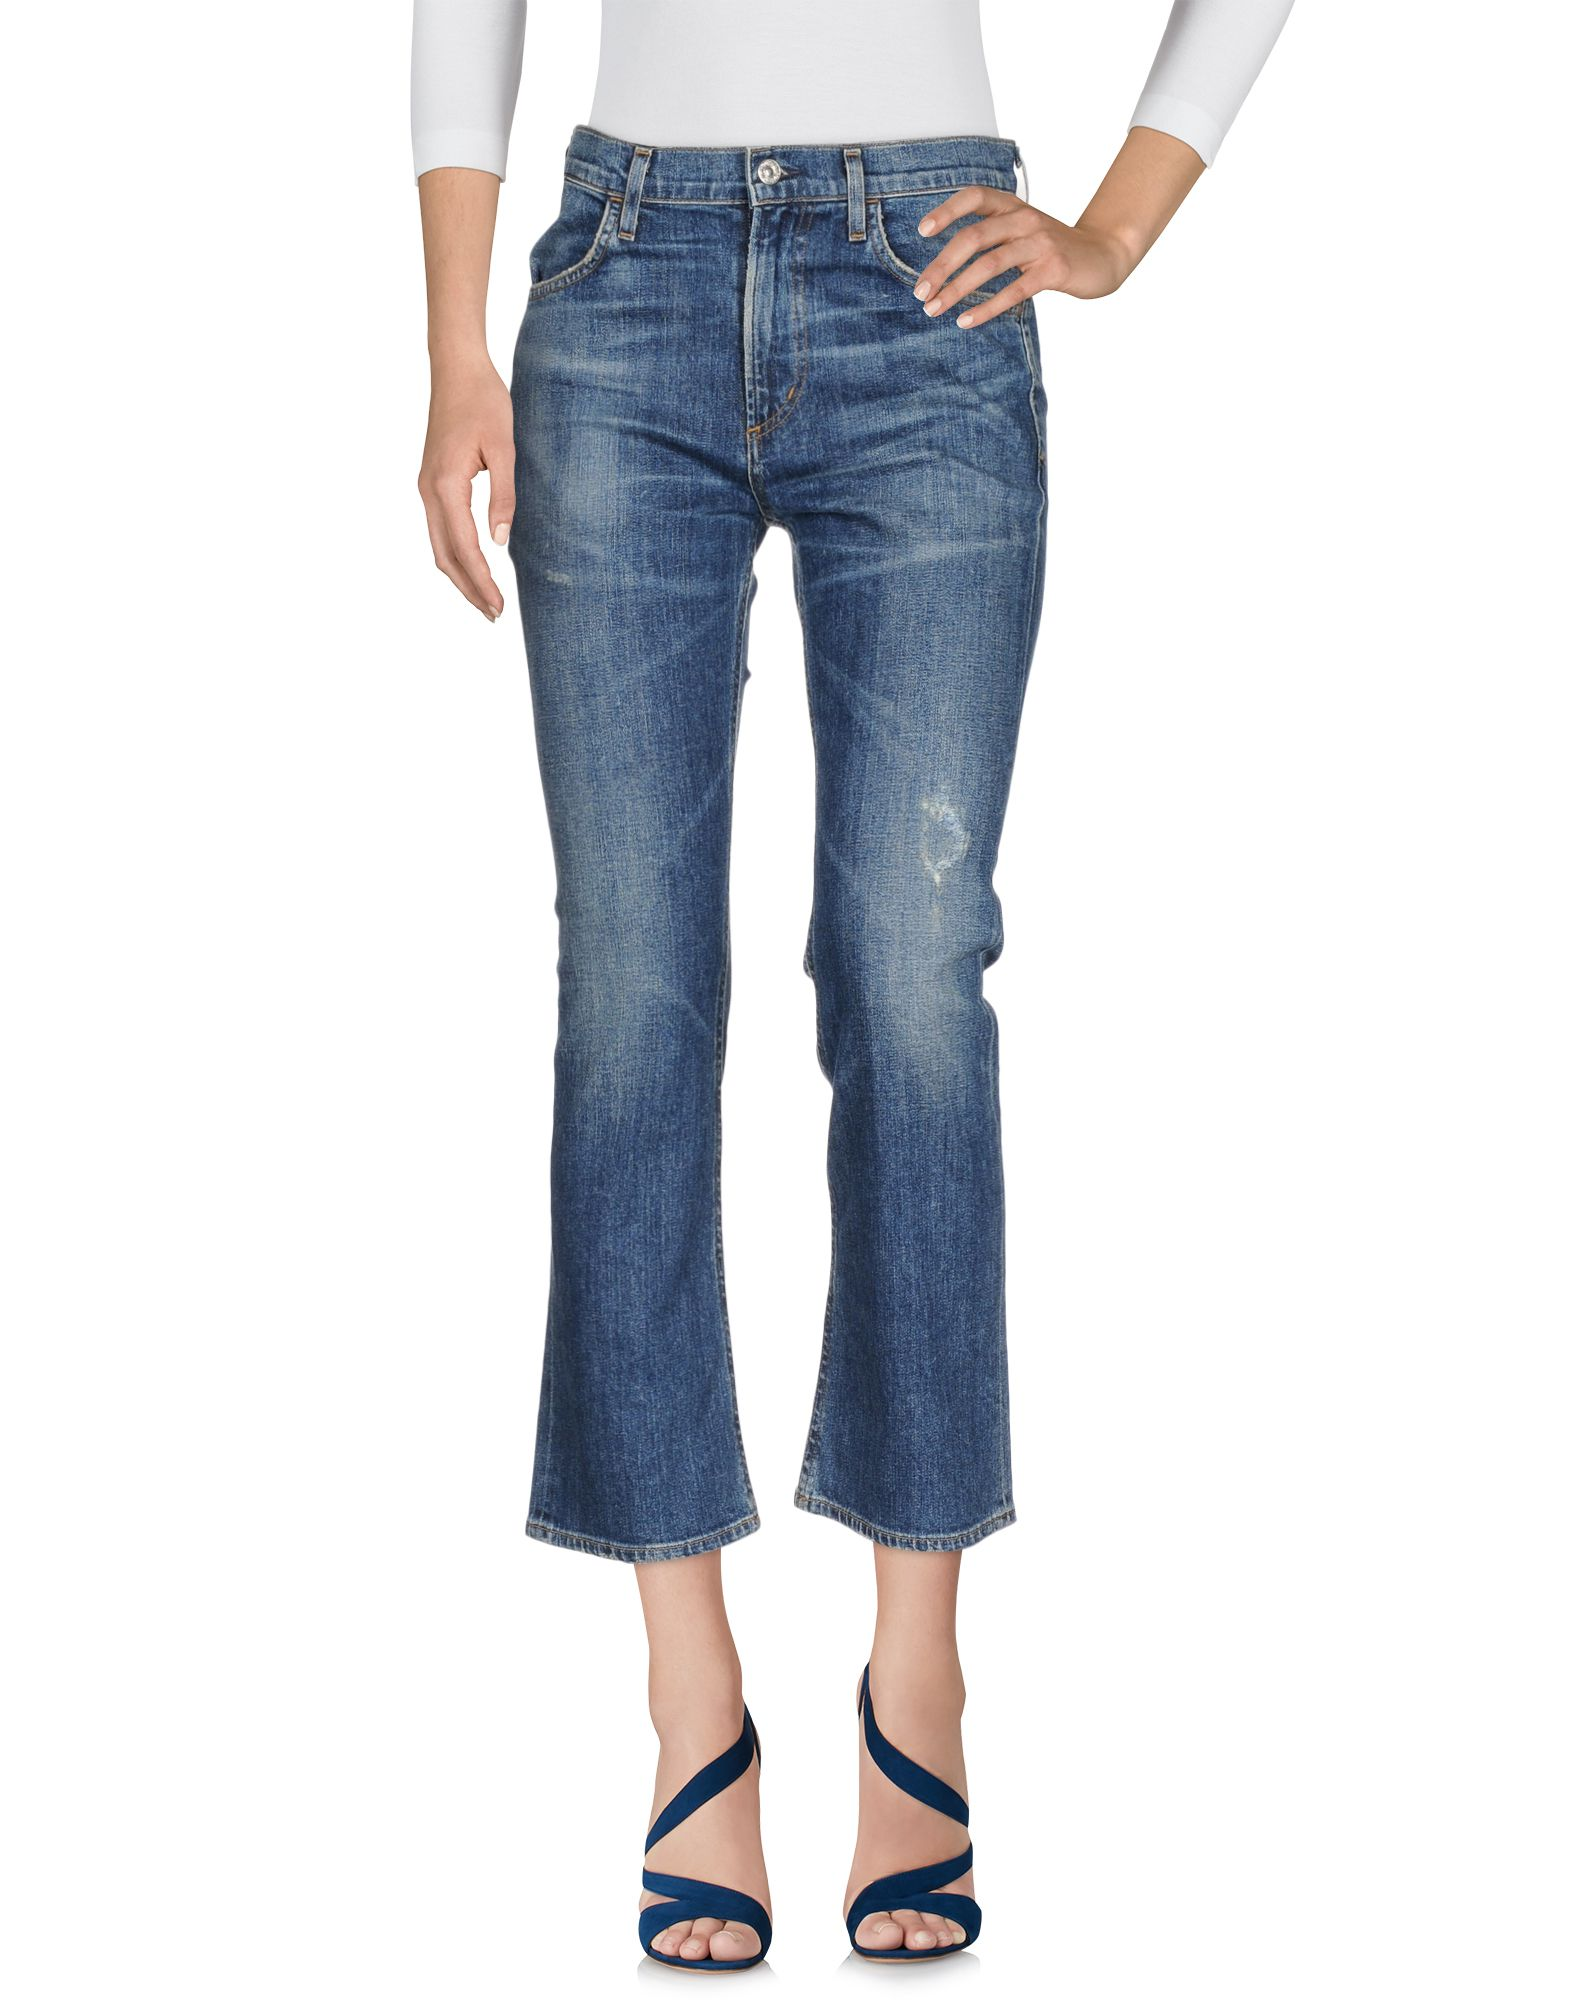 Pantaloni Jeans Citizens Of Humanity Donna - Acquista online su P56Zv41Y